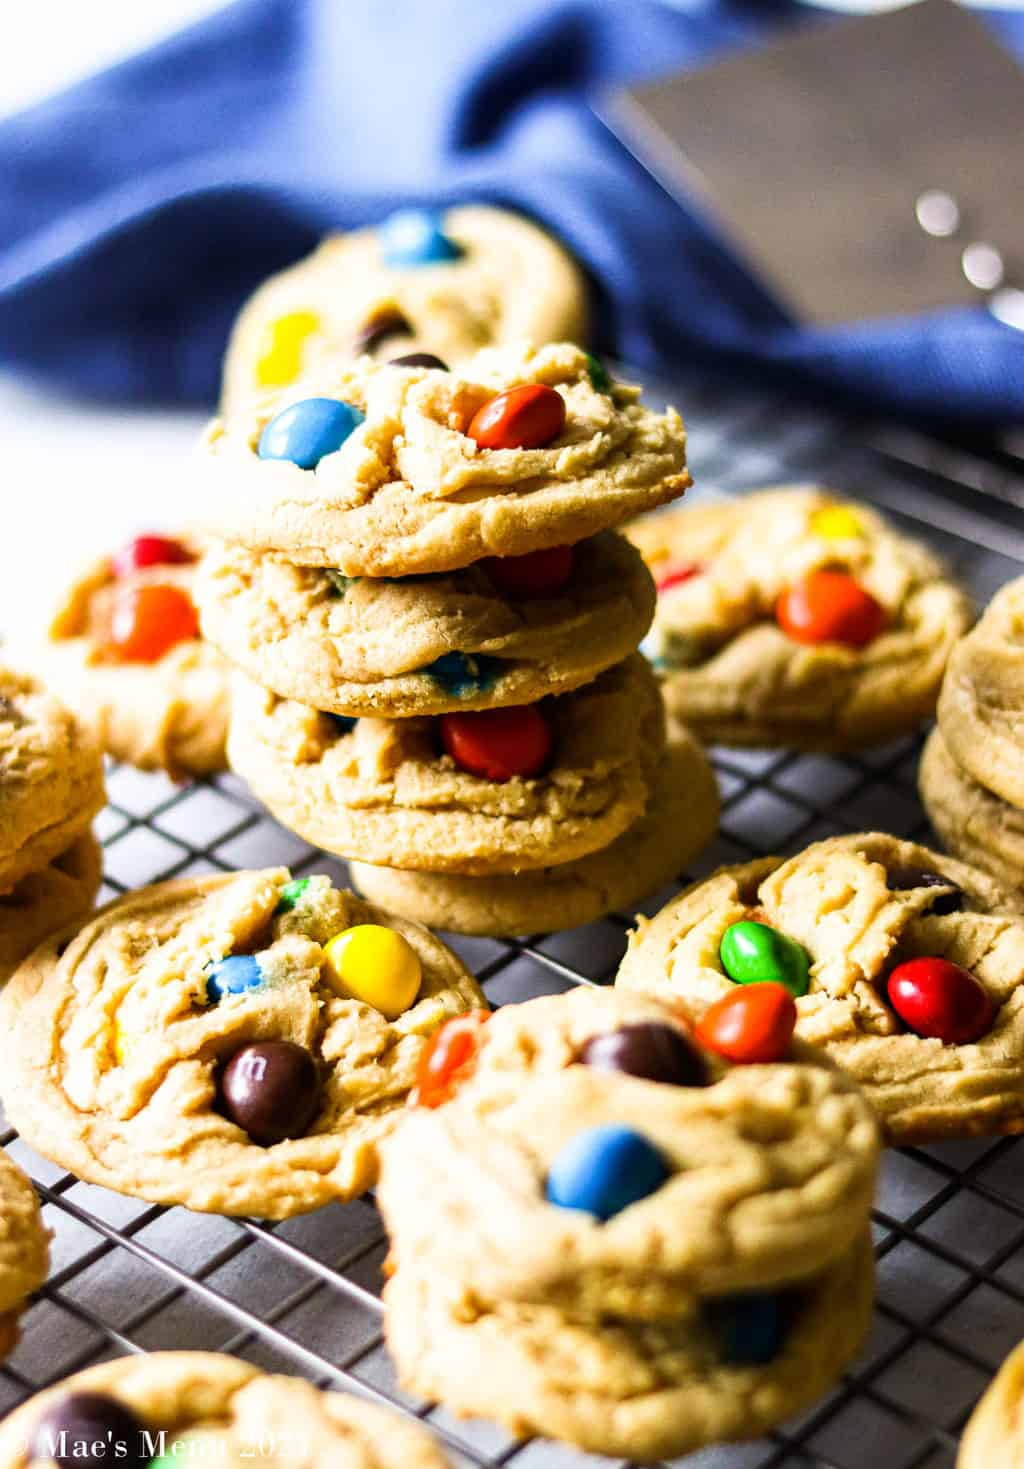 A stack of peanut butter M&M cookies on a cooling sheet with a blue towel in the background